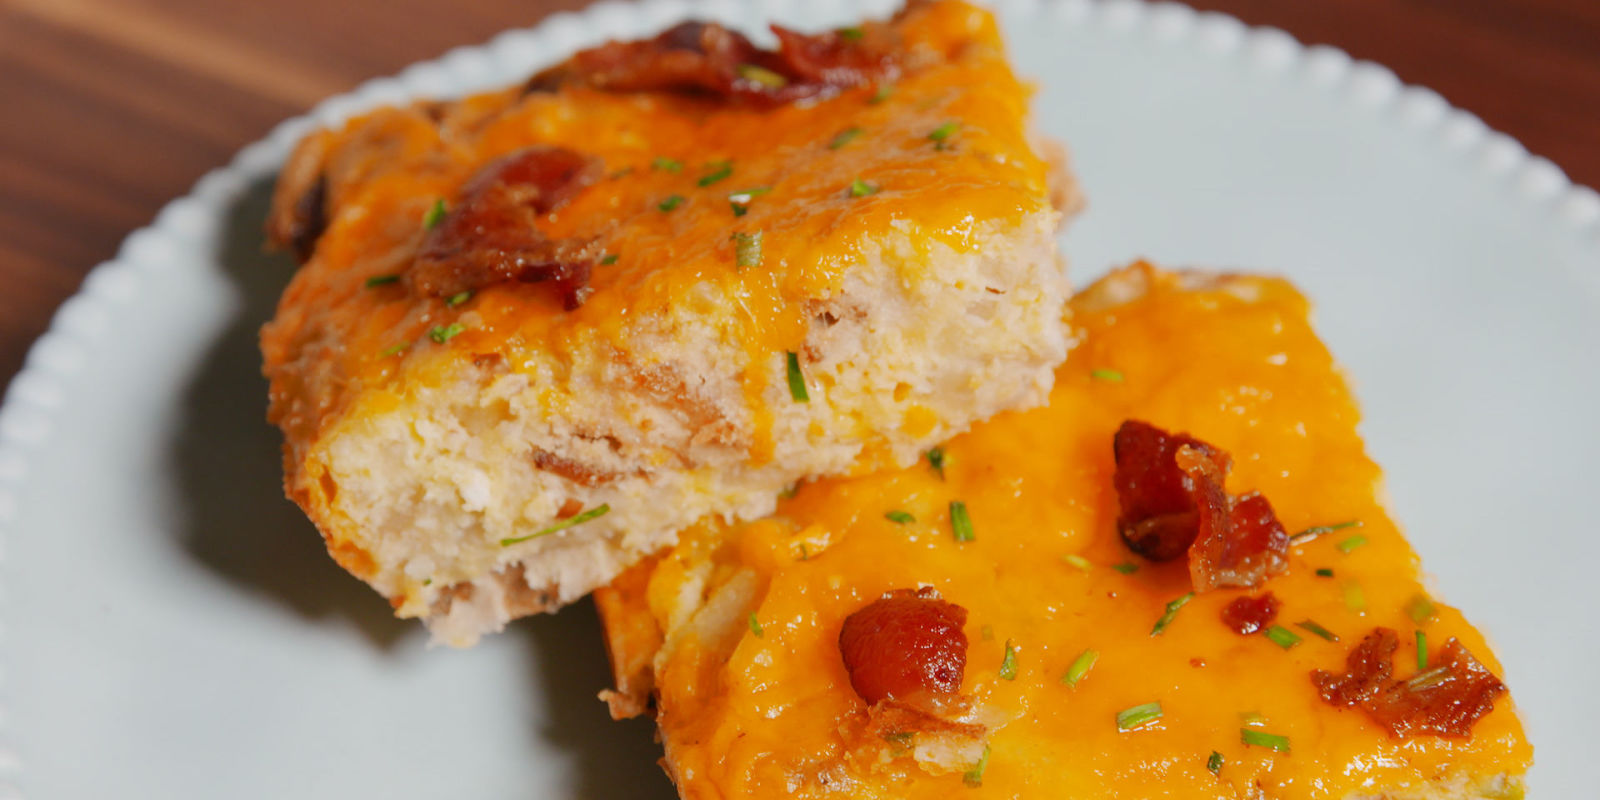 Easy Cheesy Hashbrown Casserole Recipe - Hash Brown and